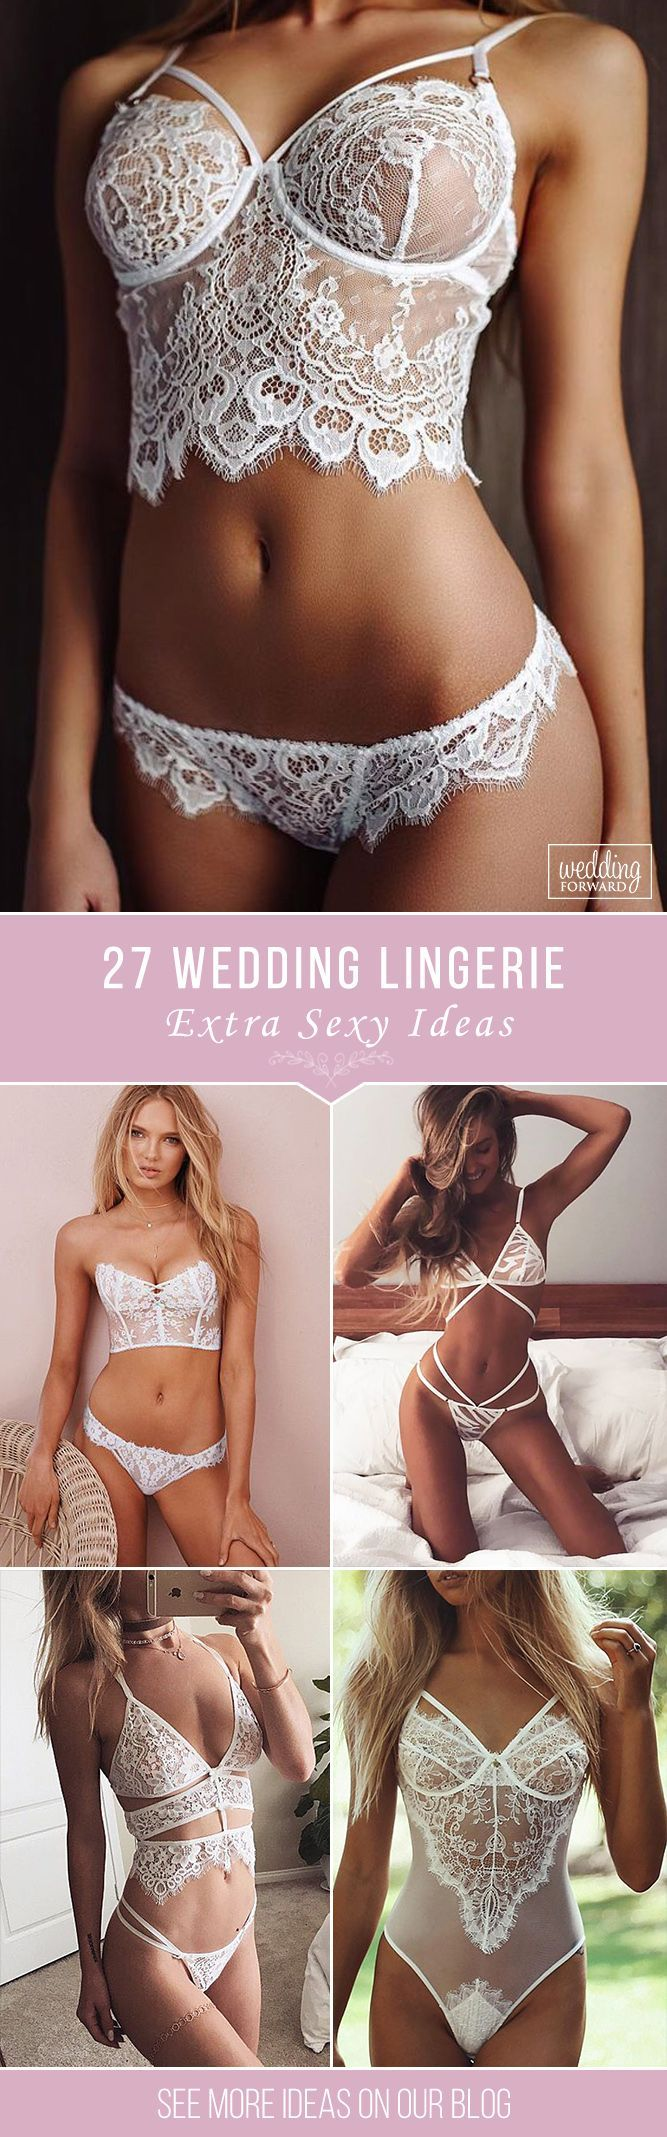 27 Extra Sexy Wedding Lingerie ❤️ Make your wedding day and wedding-night perfect with a stunning wedding lingerie from our list below. Show your sexiness to your groom! See more: http://www.weddingforward.com/wedding-lingerie/ #weddings #lingerie